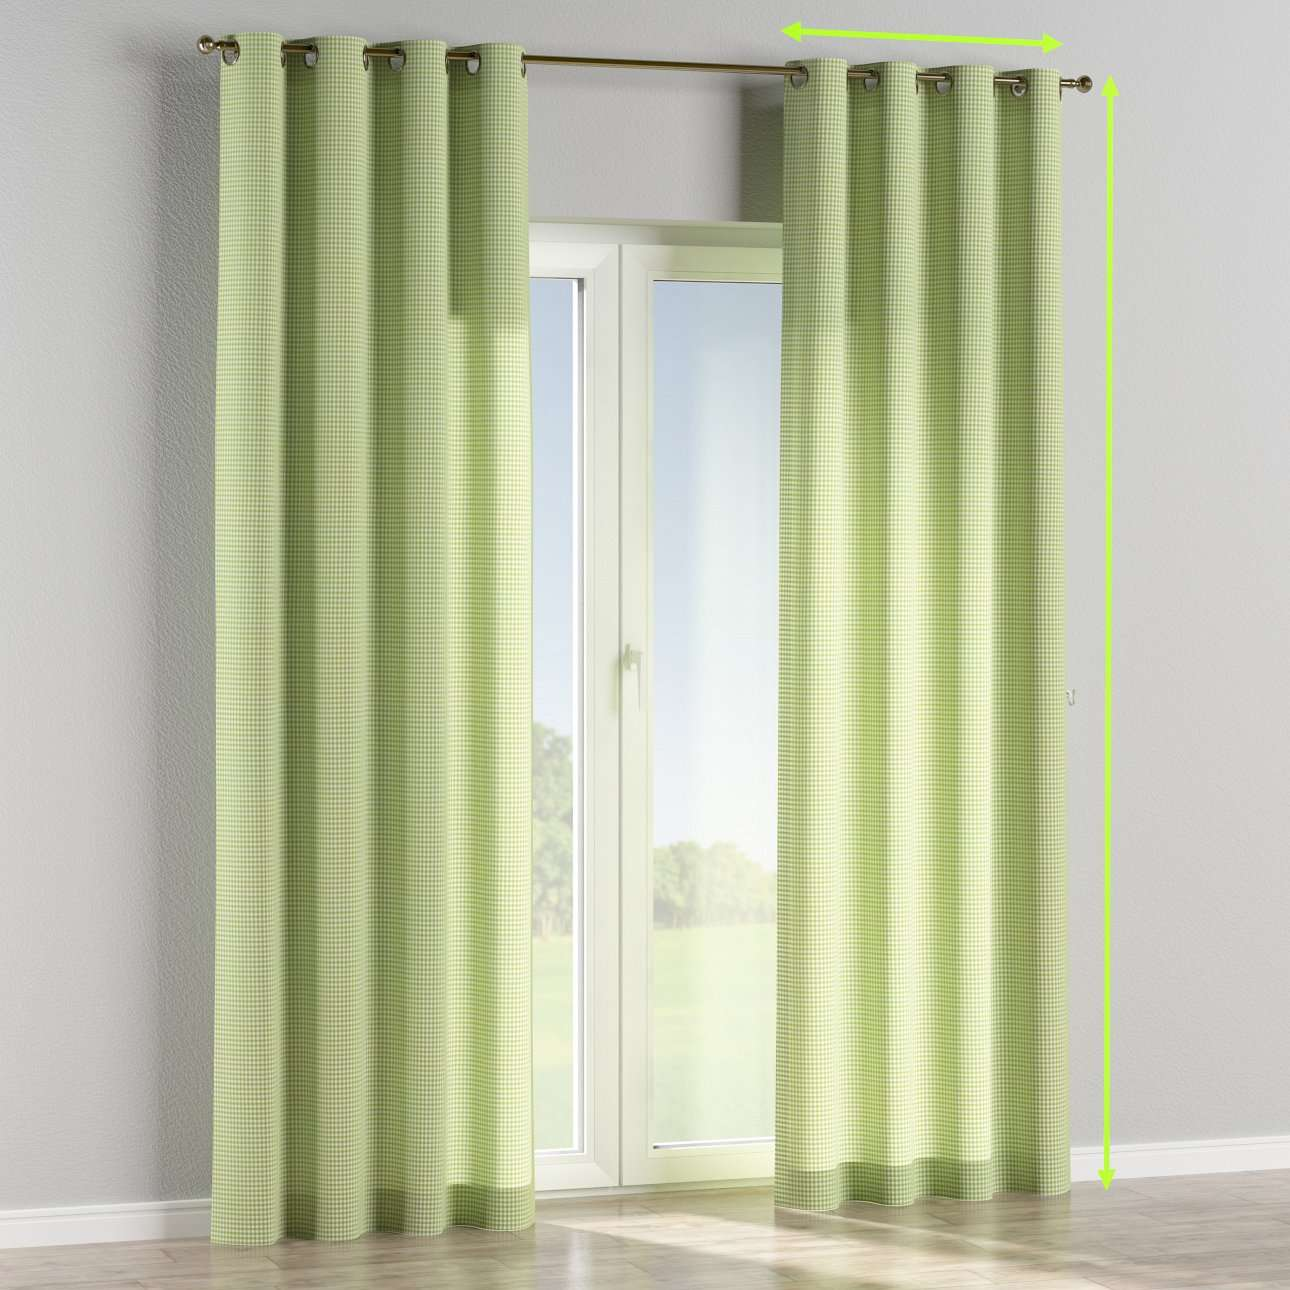 Eyelet lined curtains in collection Quadro, fabric: 136-33